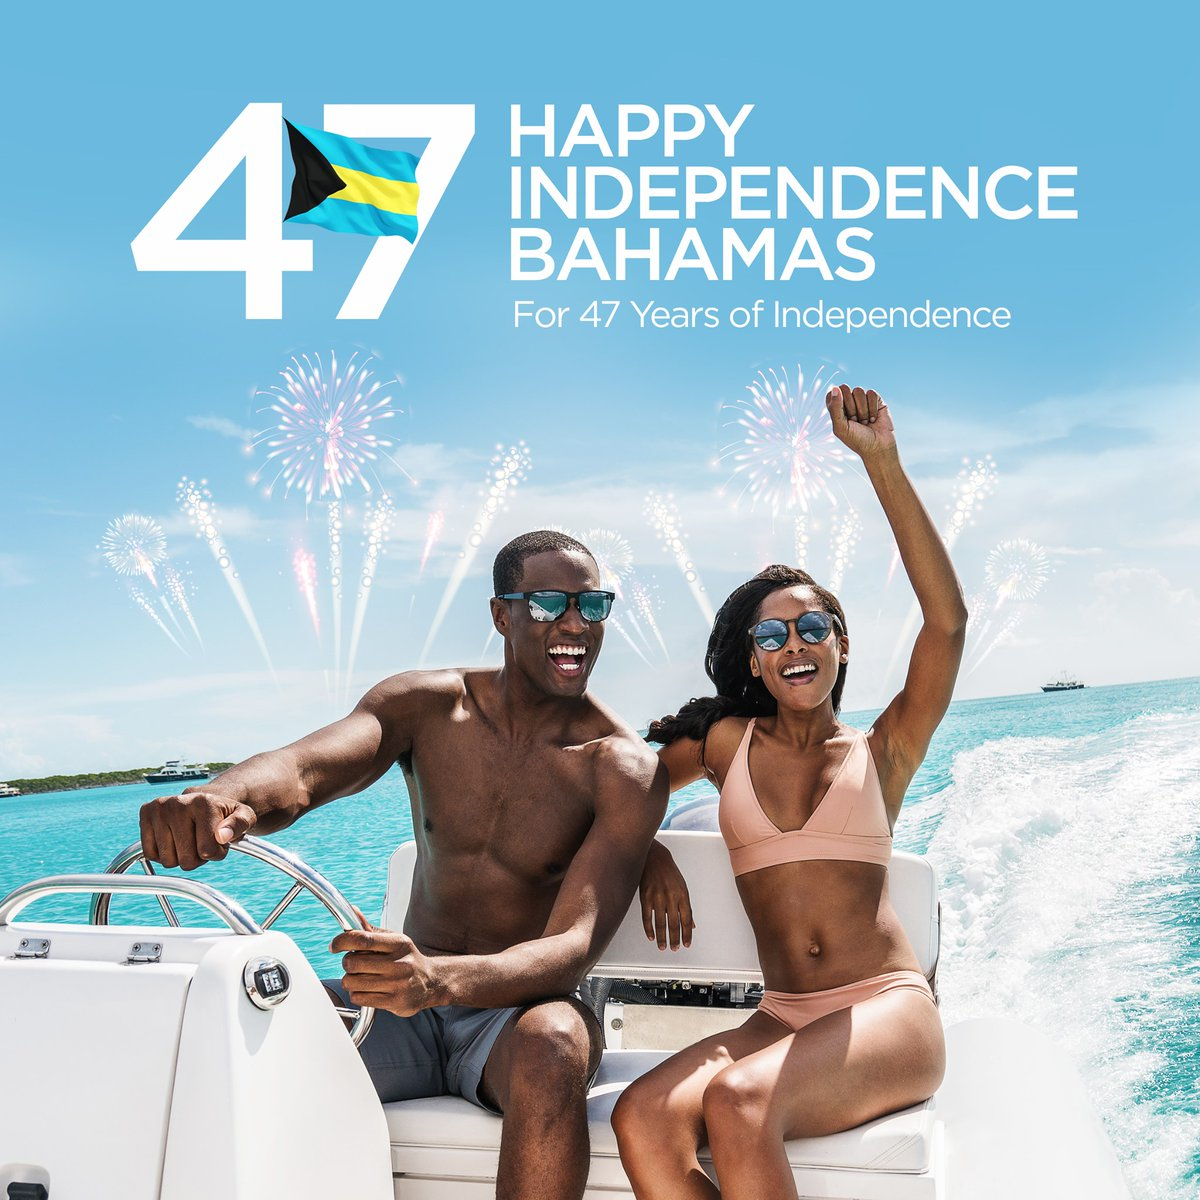 Happy Independence Bahamas!  Unlock the Secrets at Jack's Bay. Visit https://t.co/rvSwLI9RNm  #JacksBayClub #UnlockTheSecrets #SocialDistancing #RockSound #Eleuthera #TheBahamas #TigerWoods #TGRDesign #Golf #Beach #LuxuryRealEstate #RealEstateAgent #Home #ANewWayOfLiving https://t.co/oL9Xl7N2BT